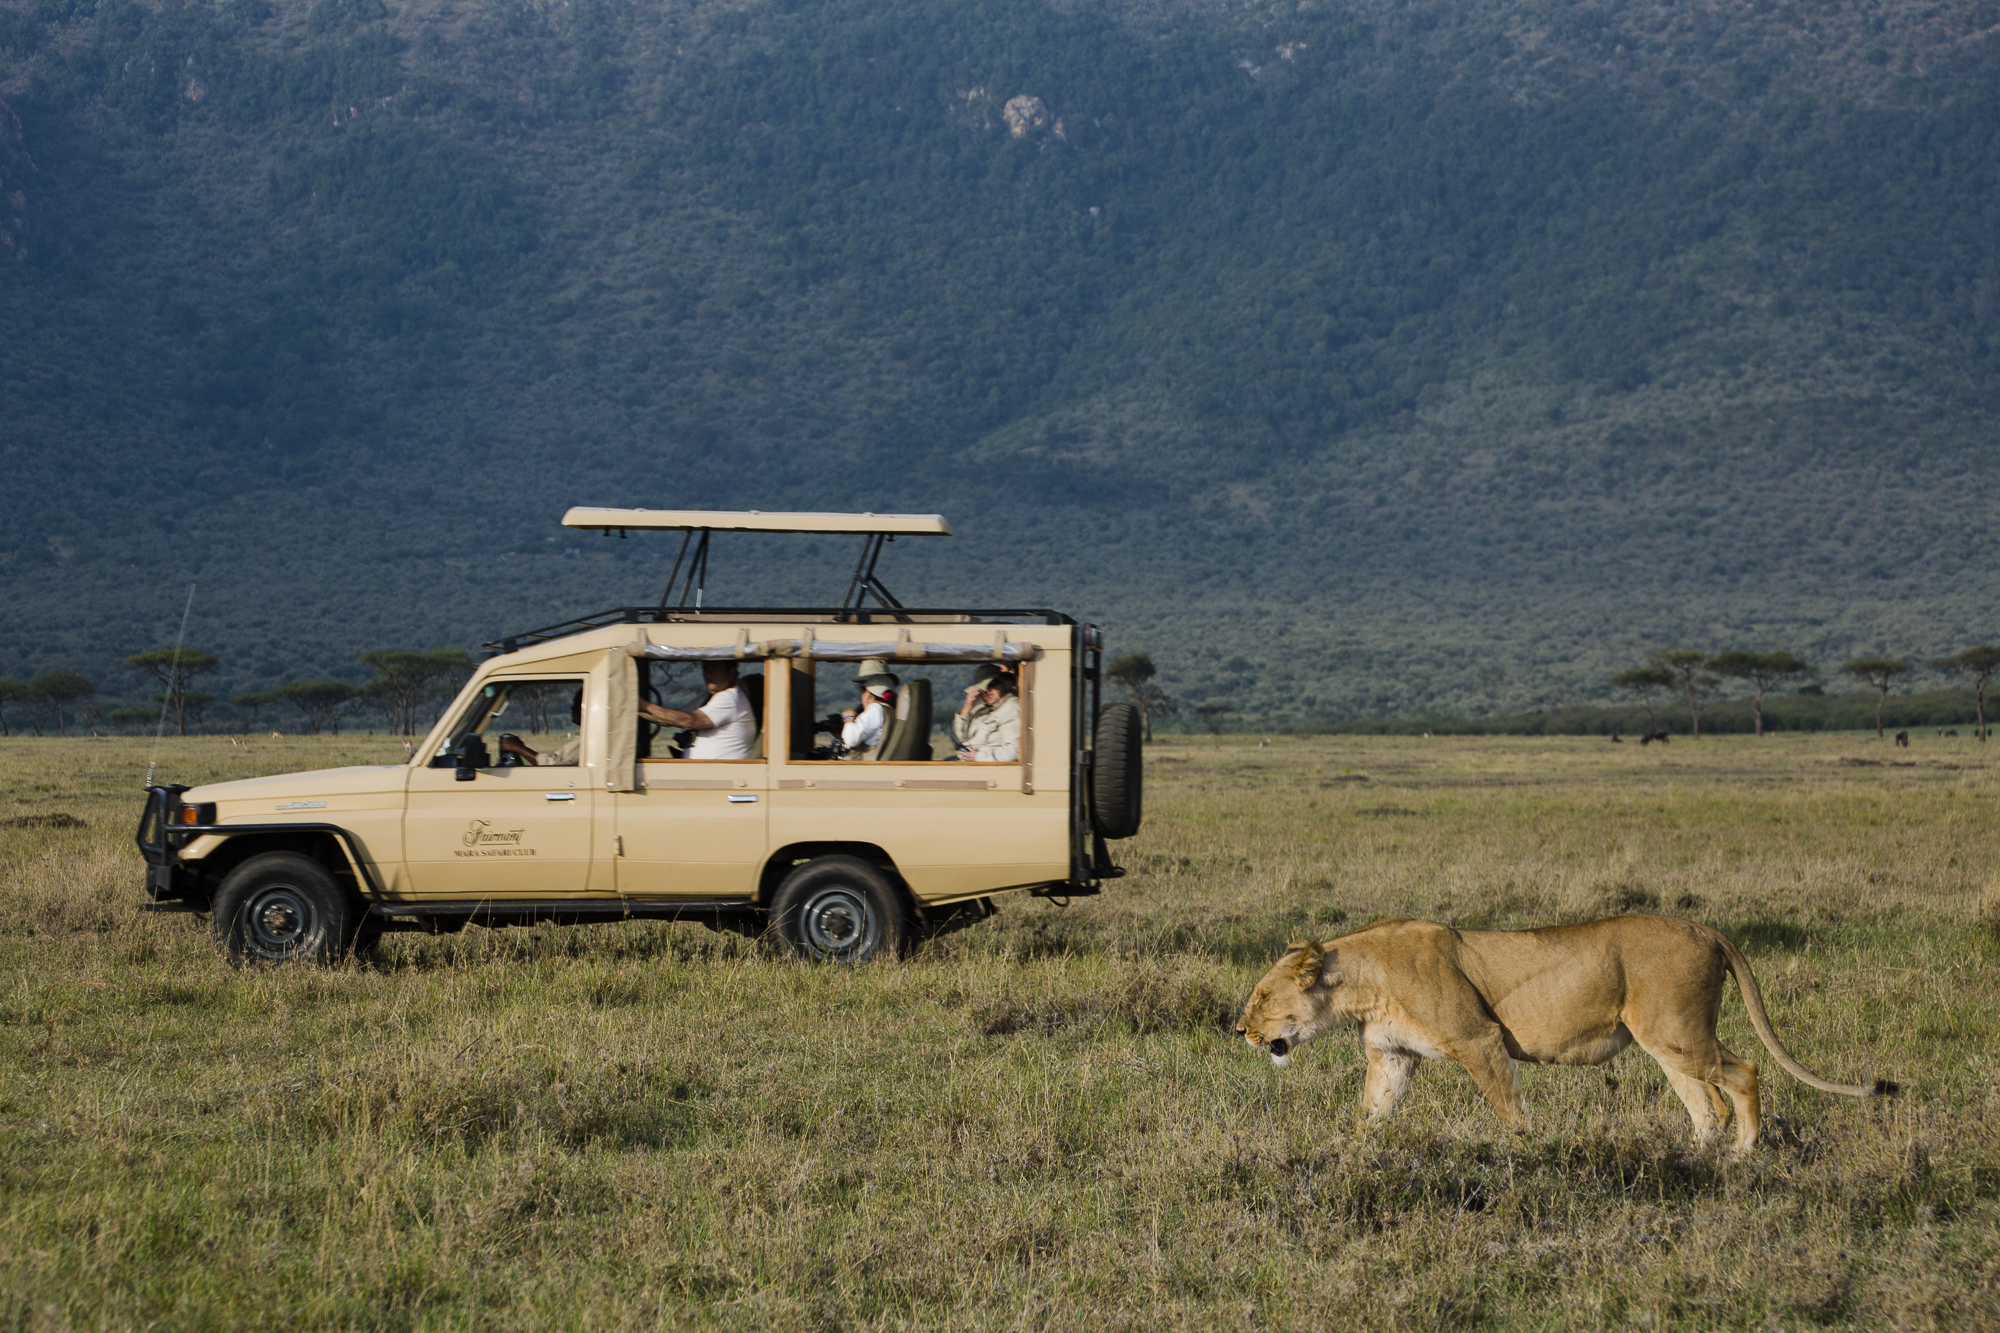 A lioness is followed by a safari tour vehicle in the Maasai Mara National Reserve in Kenya.